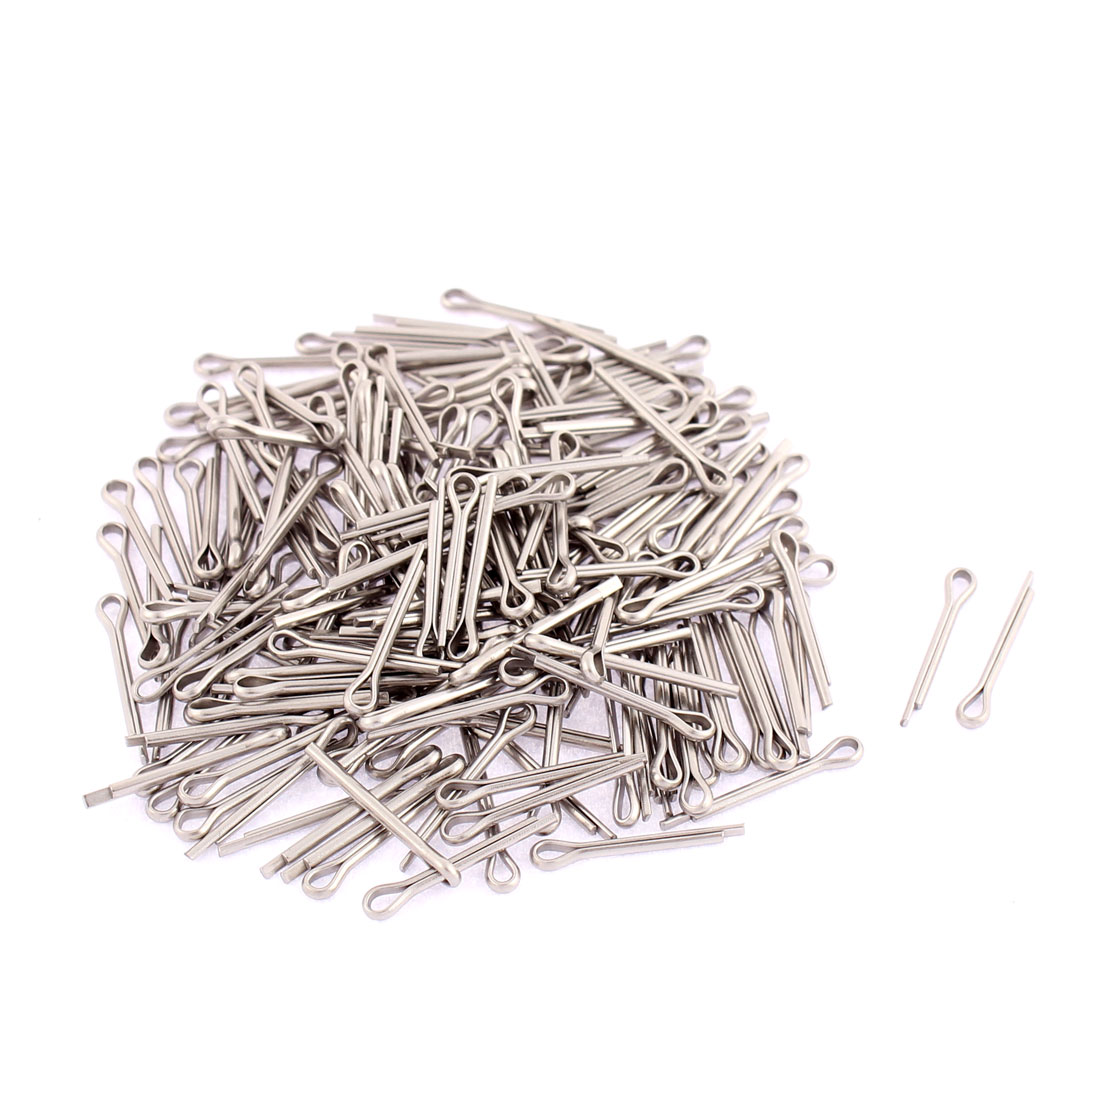 M1.2x12mm 304 Stainless Steel Split Cotter Pins Silver Tone 200pcs